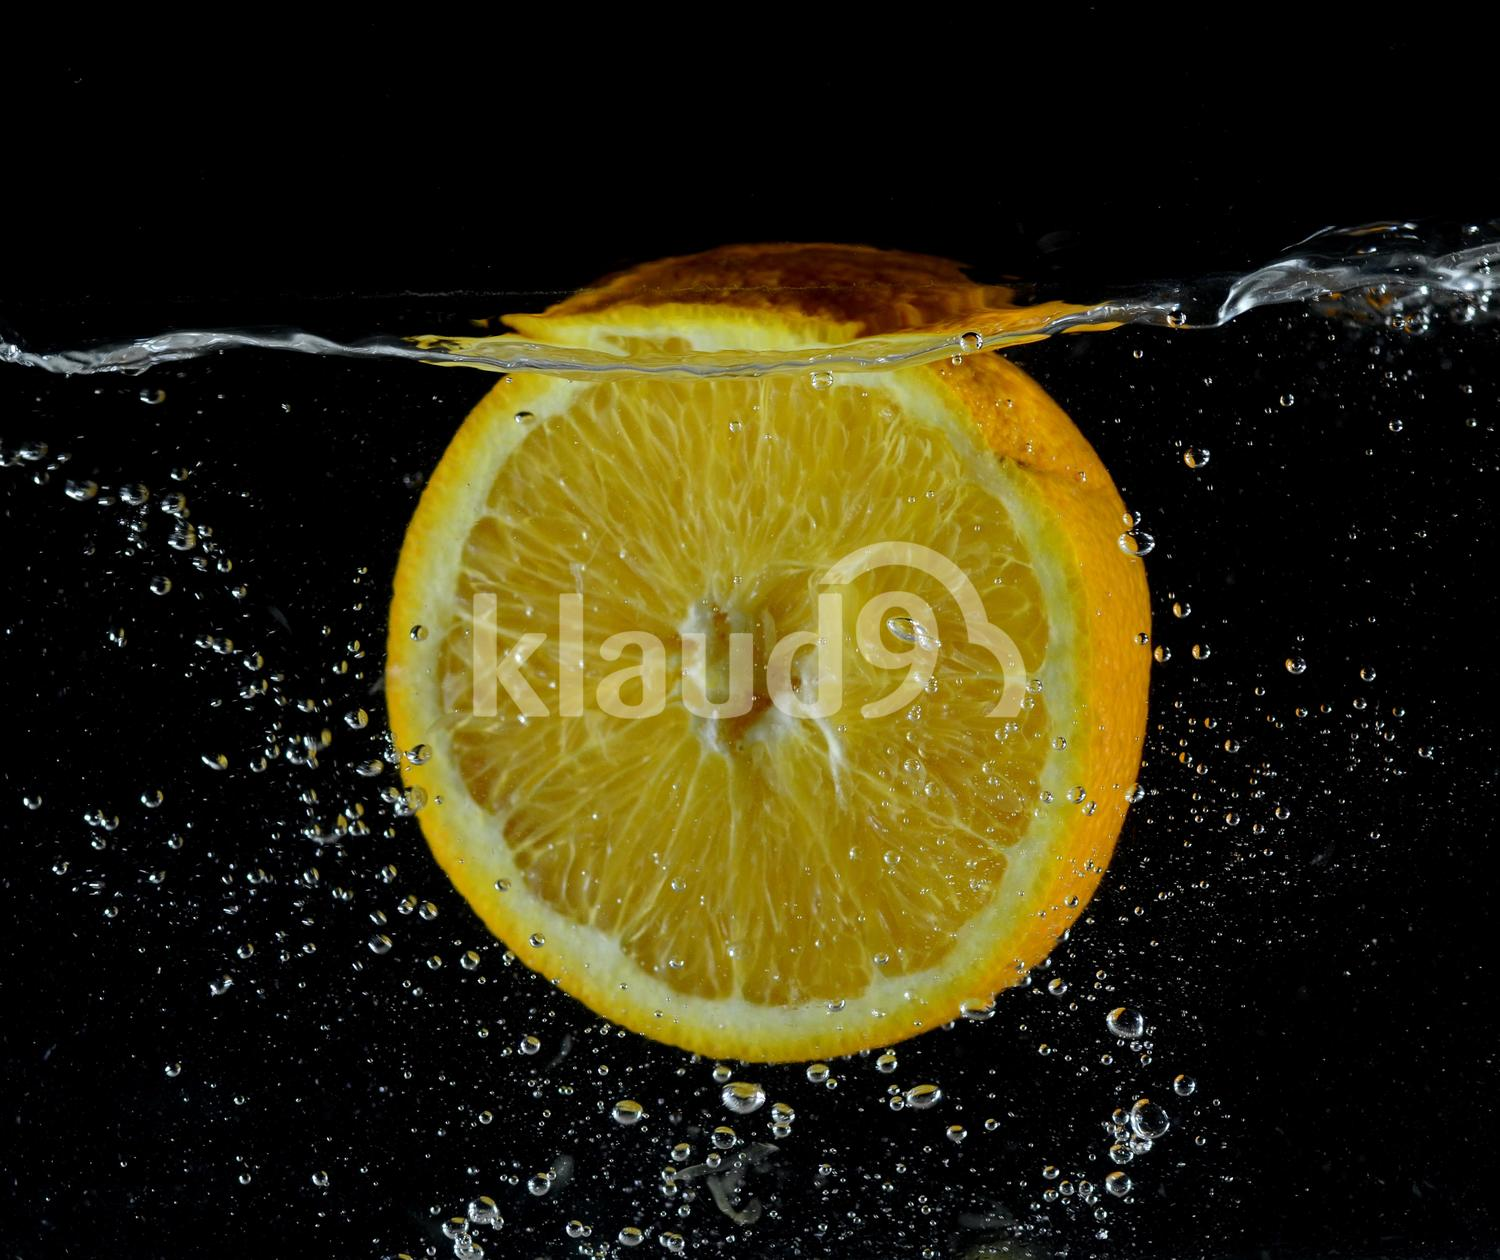 Orange falling into the water, the clash of the fruit with water